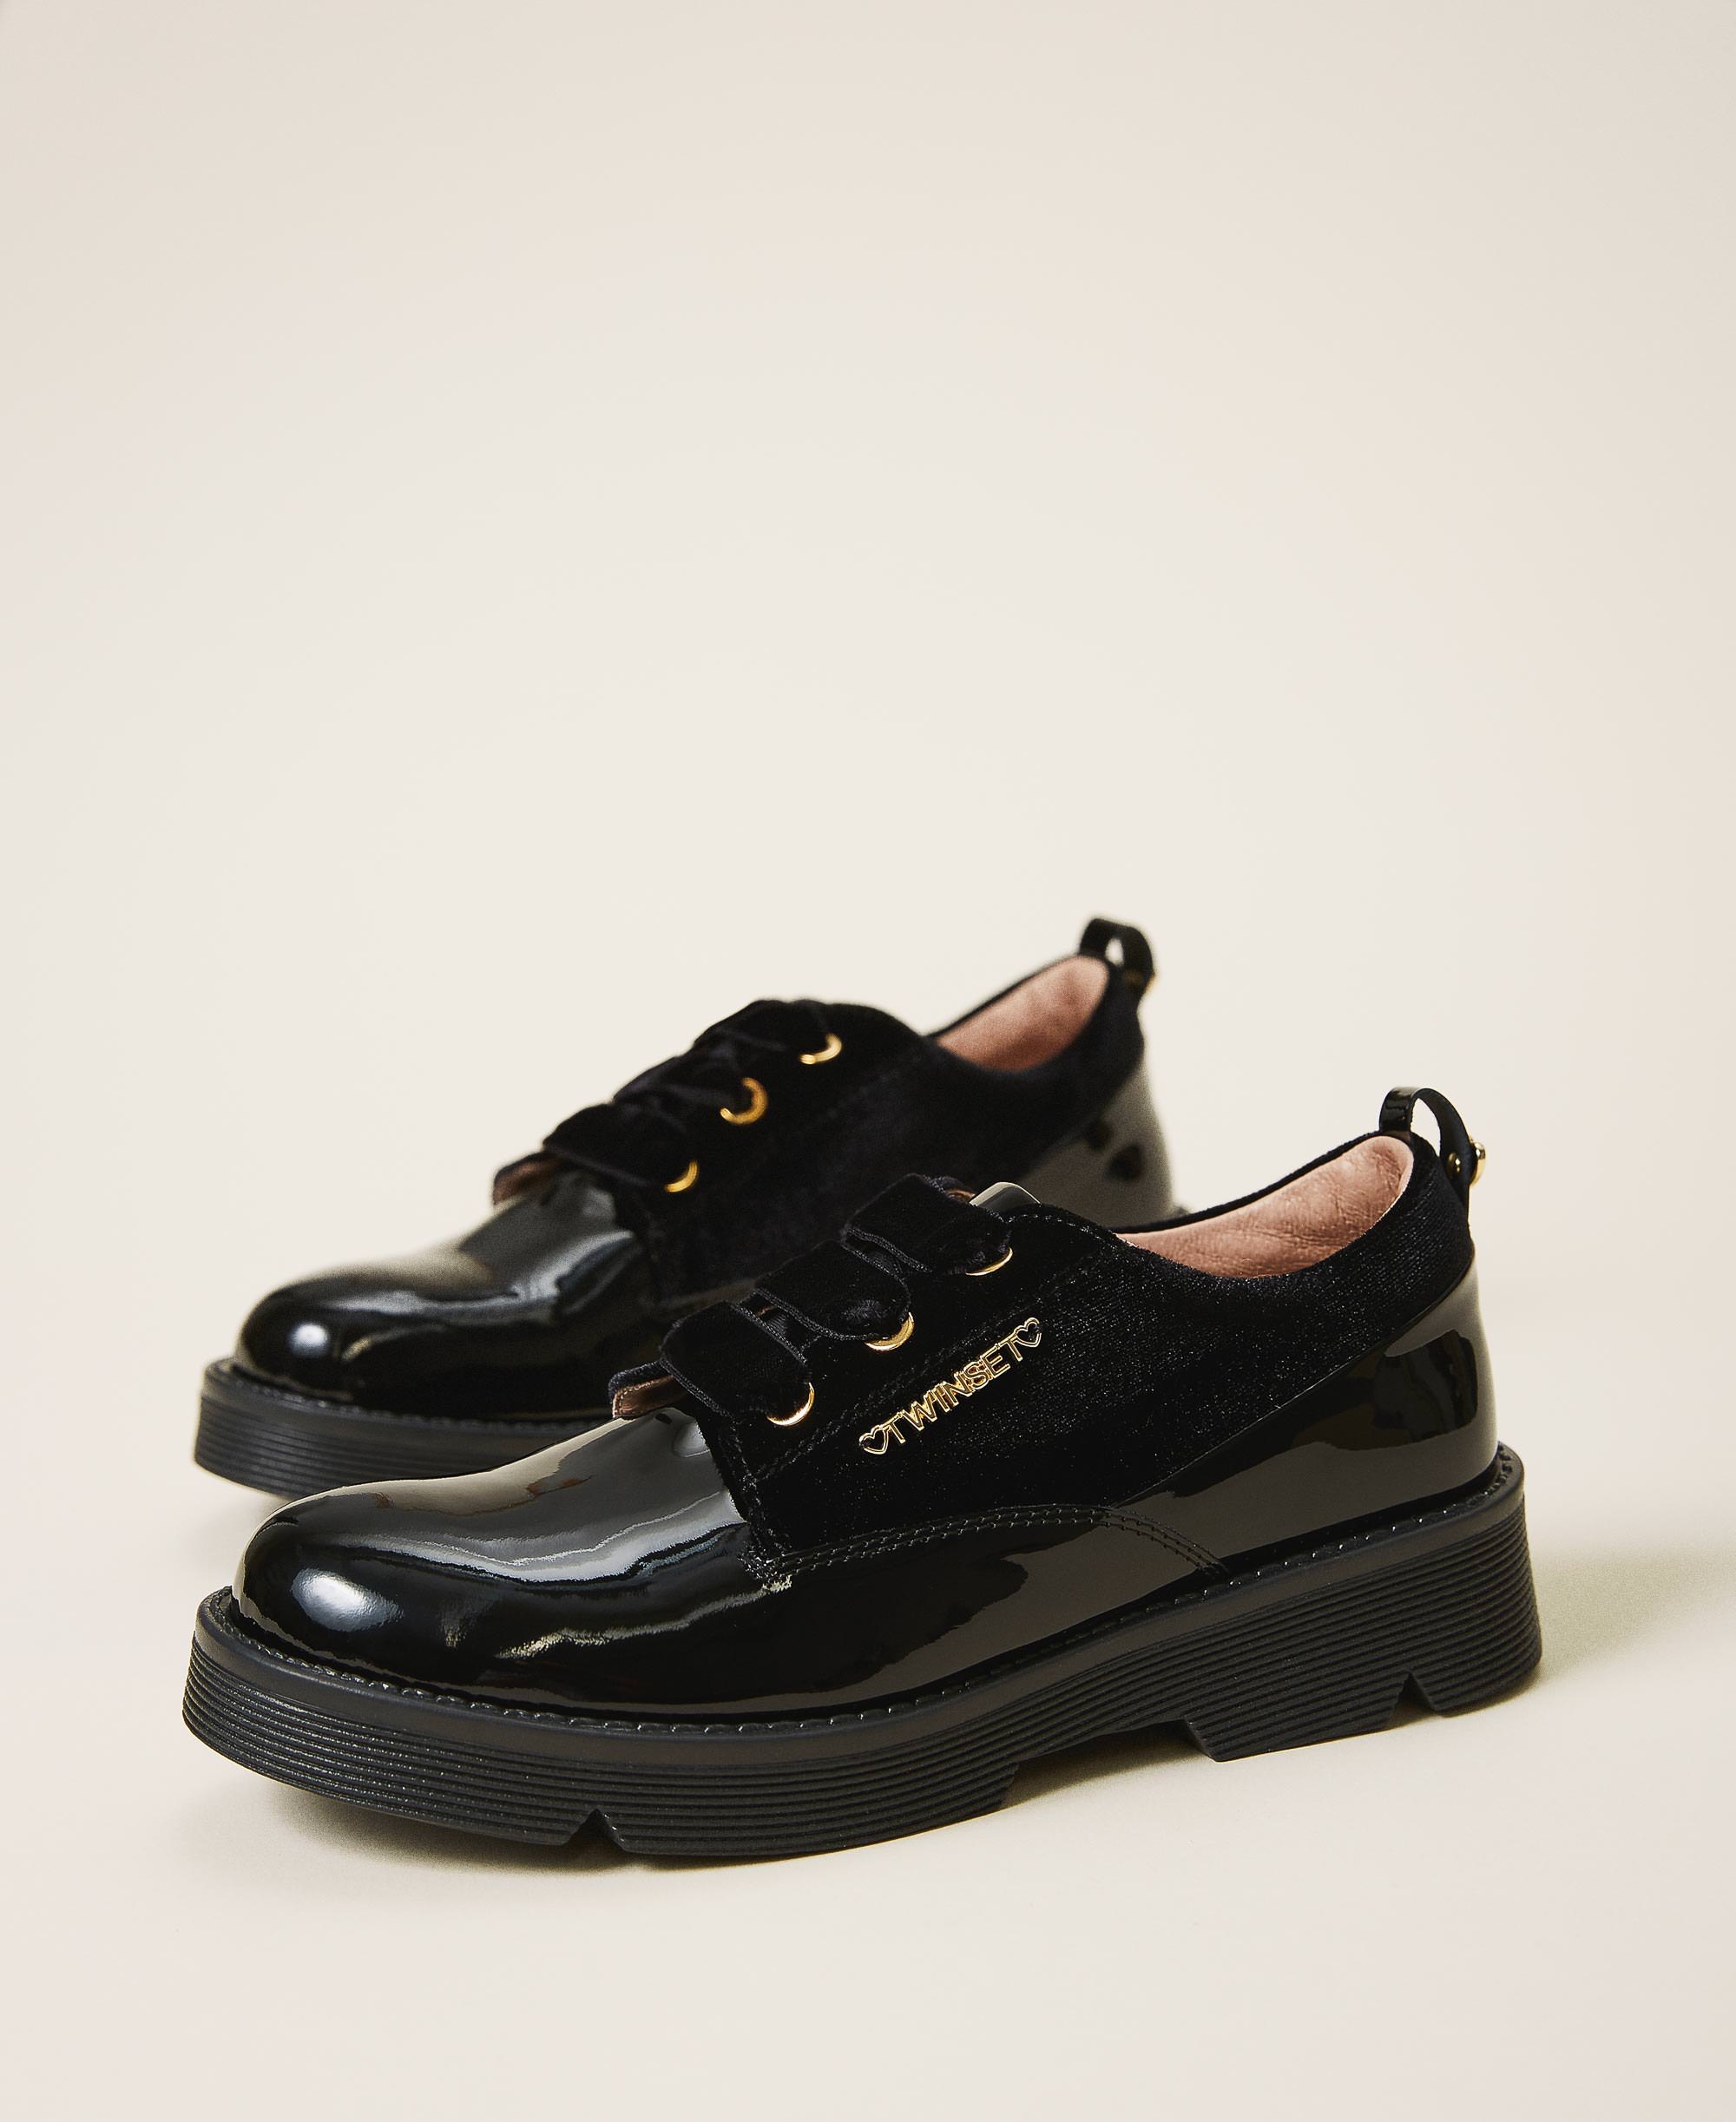 Patent leather tie-up shoes Child